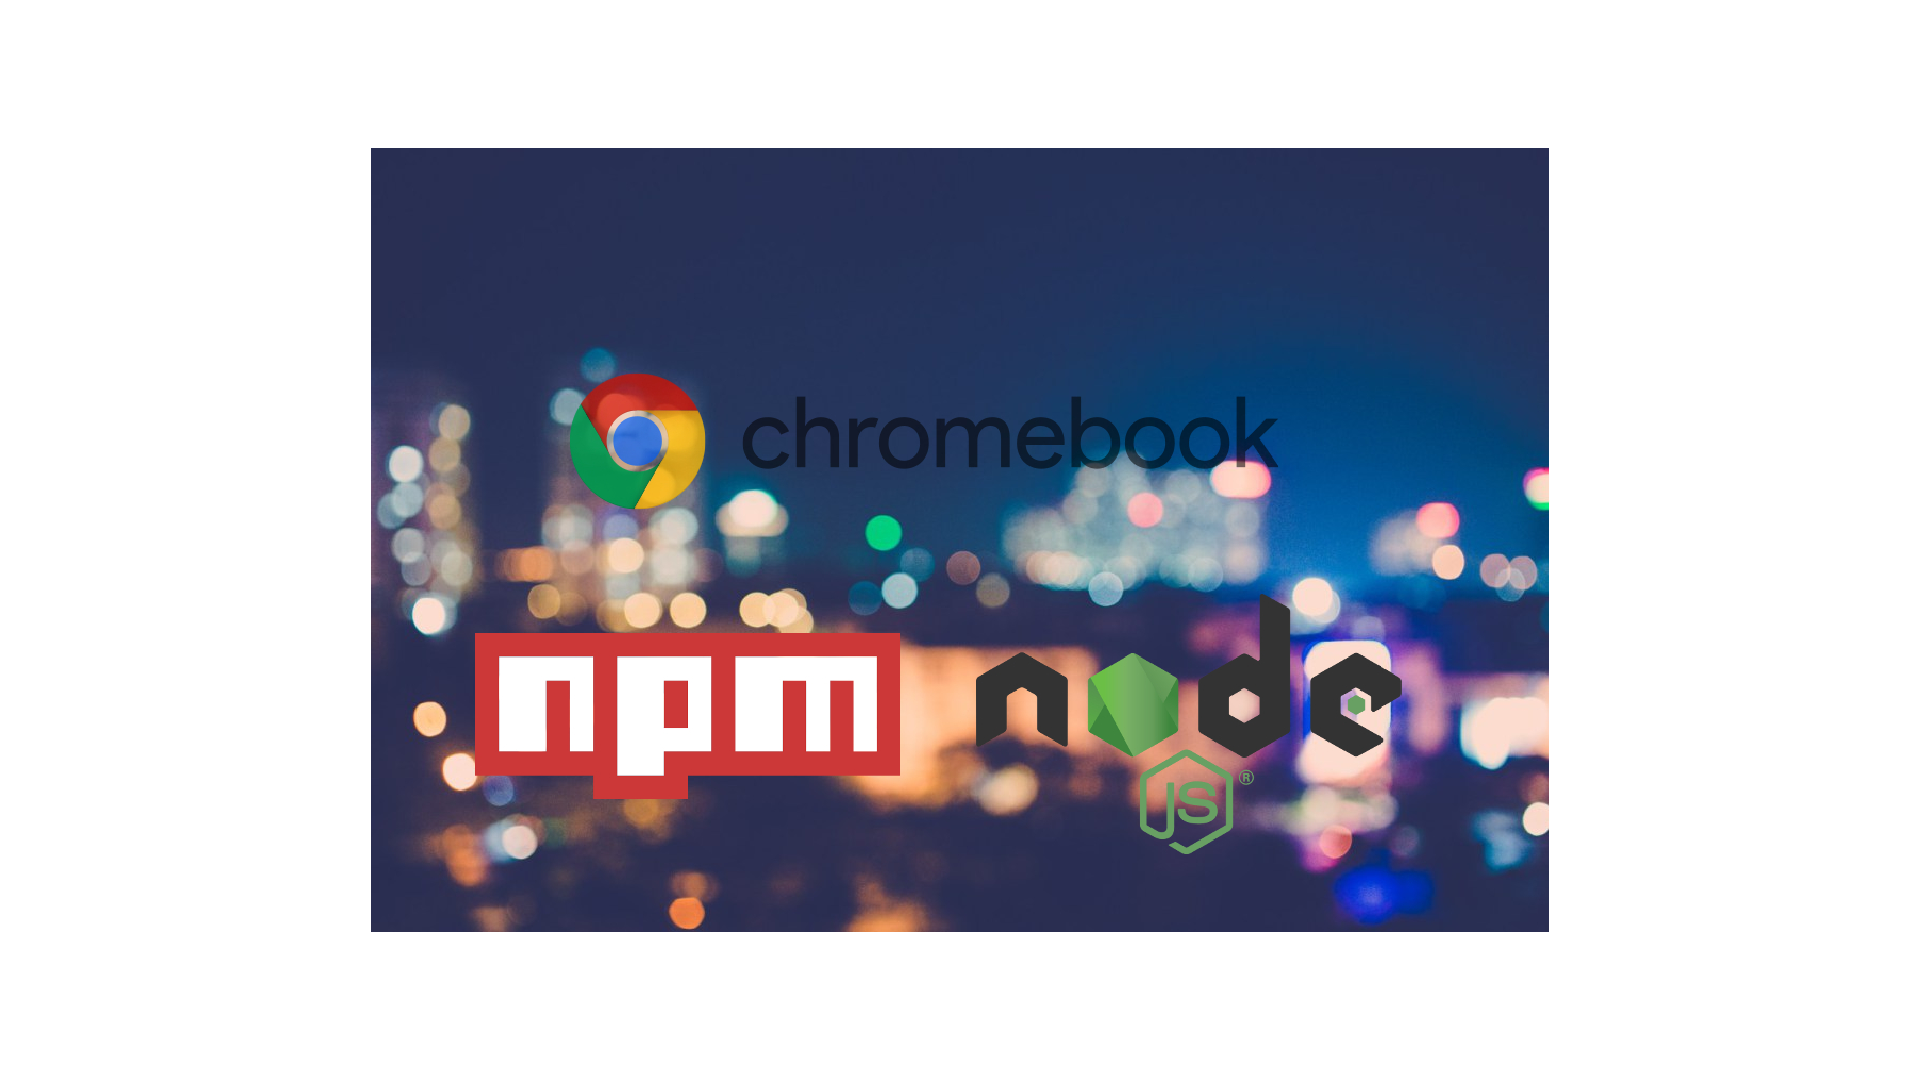 Guide on how to install Node js and NPM on a Chromebook